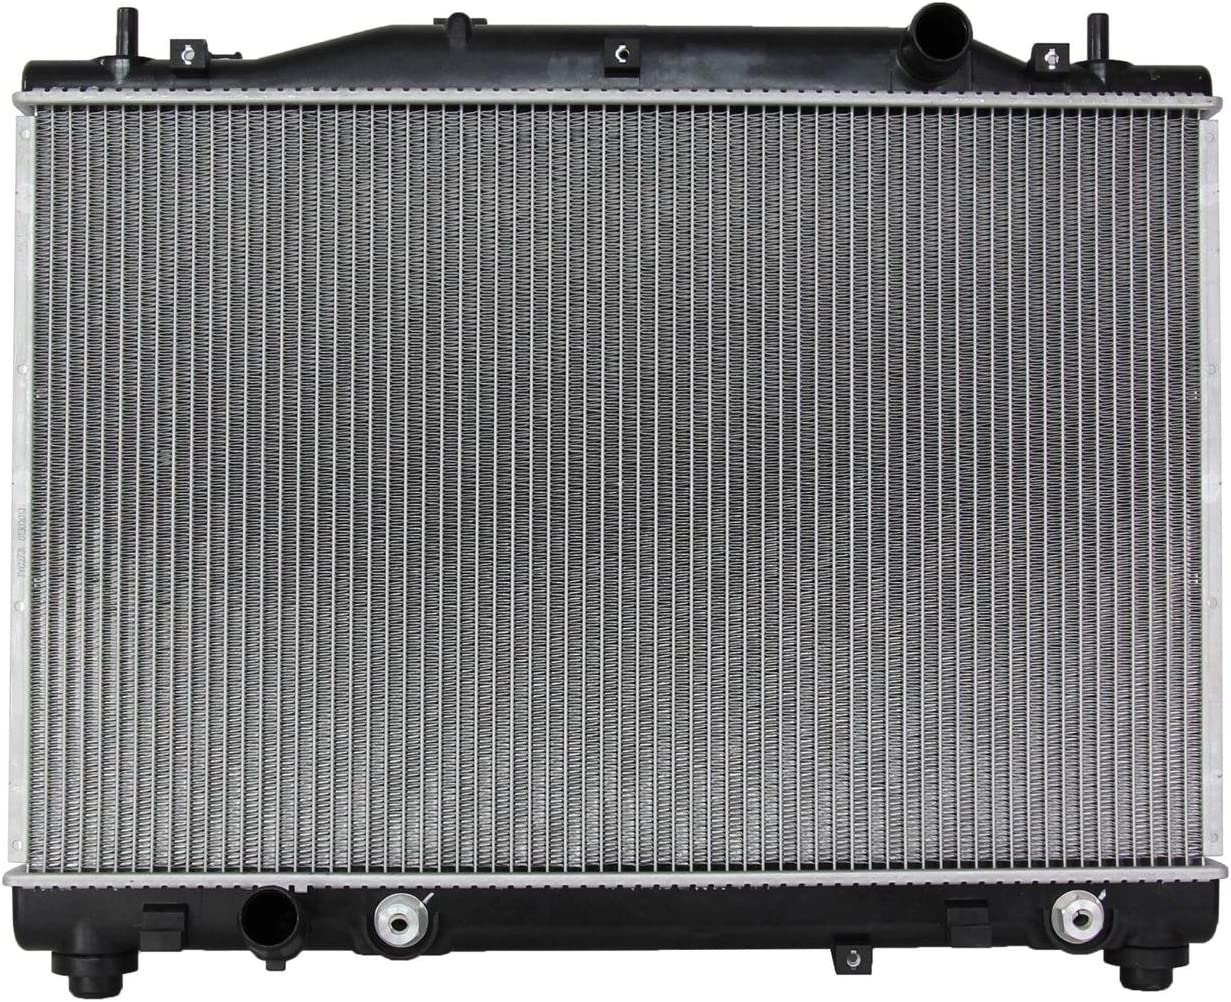 Radiator For Cadillac SRX 2007-2009 V6 V8 3.6 4.6